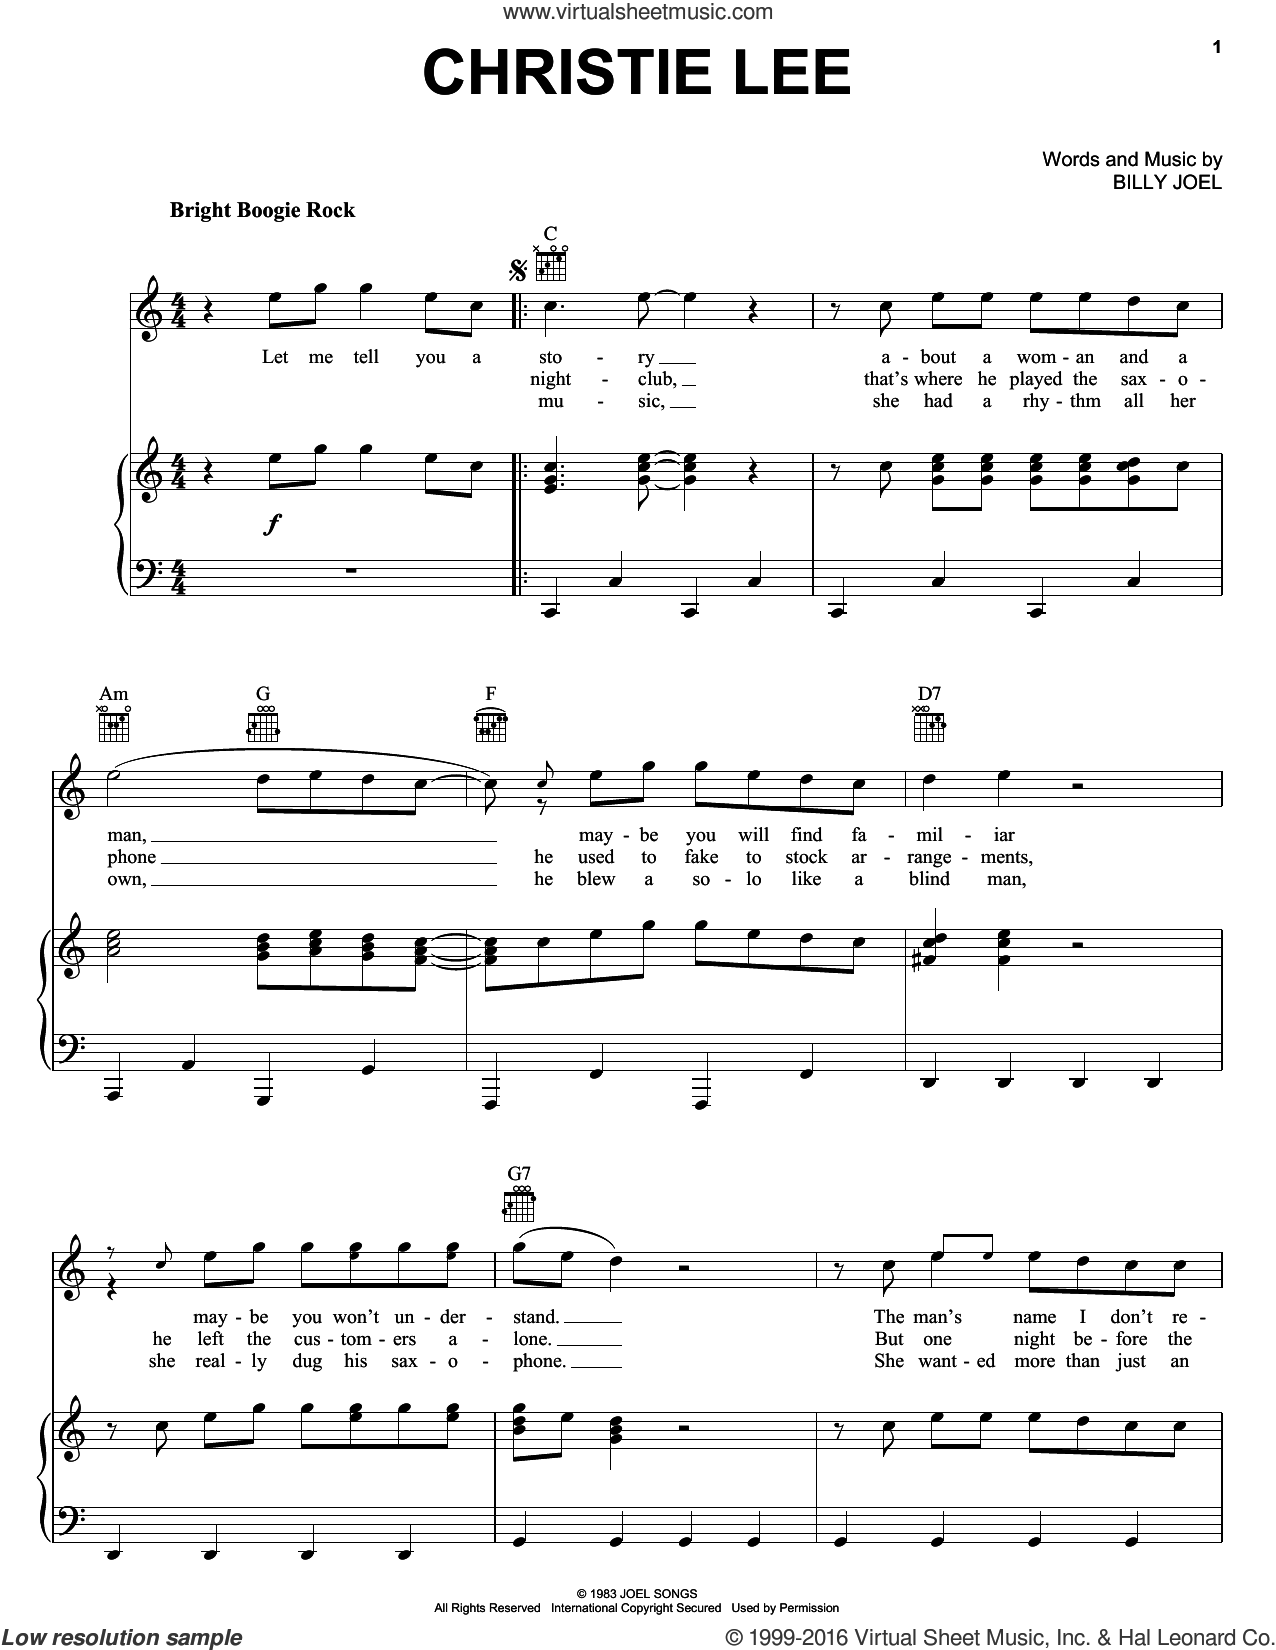 Christie Lee sheet music for voice, piano or guitar by Billy Joel, intermediate skill level